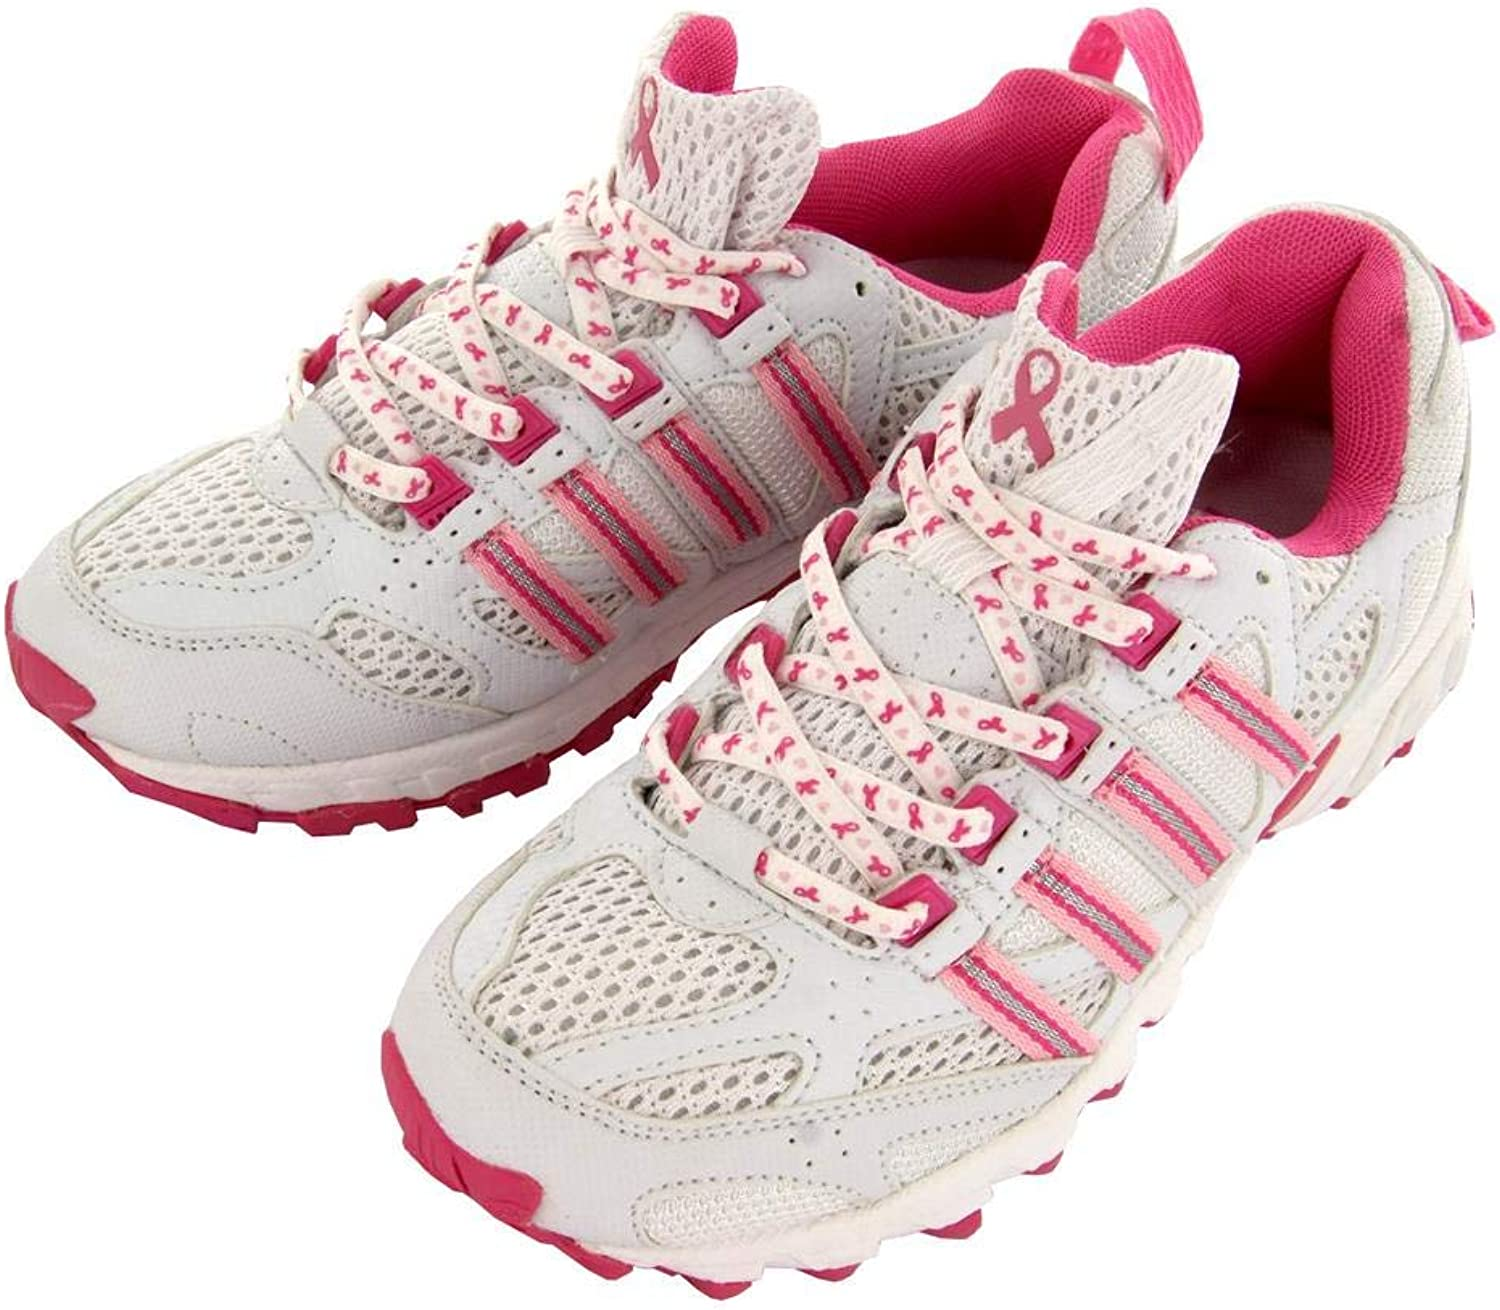 GreaterGood Pink Ribbon Cross-Training shoes